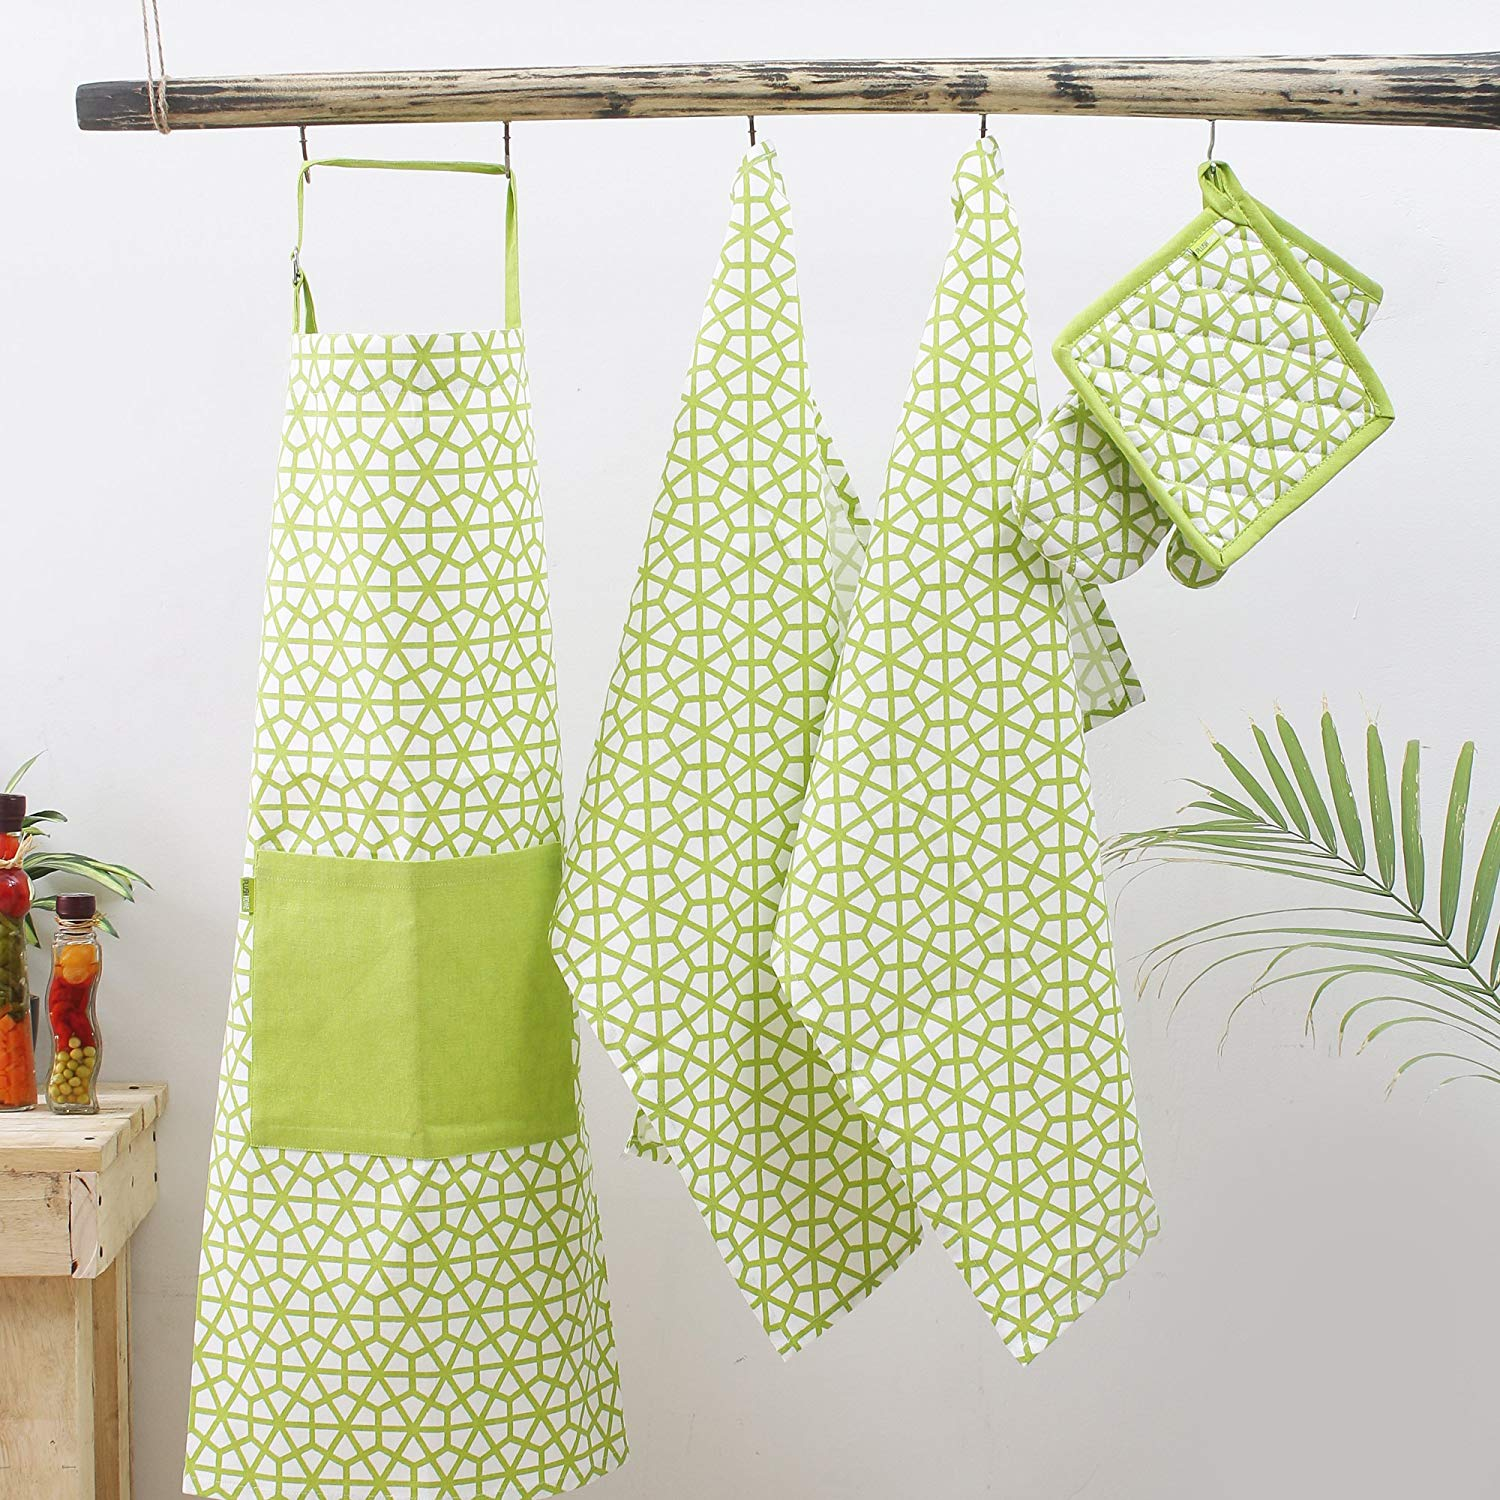 Kitchen combo Set, 100% Cotton, Set of Apron + Oven Mitten + Potholder & Pair of Kitchen towel, Eco - Friendly & Safe, Green, The Hive in Lime Design for Kitchen